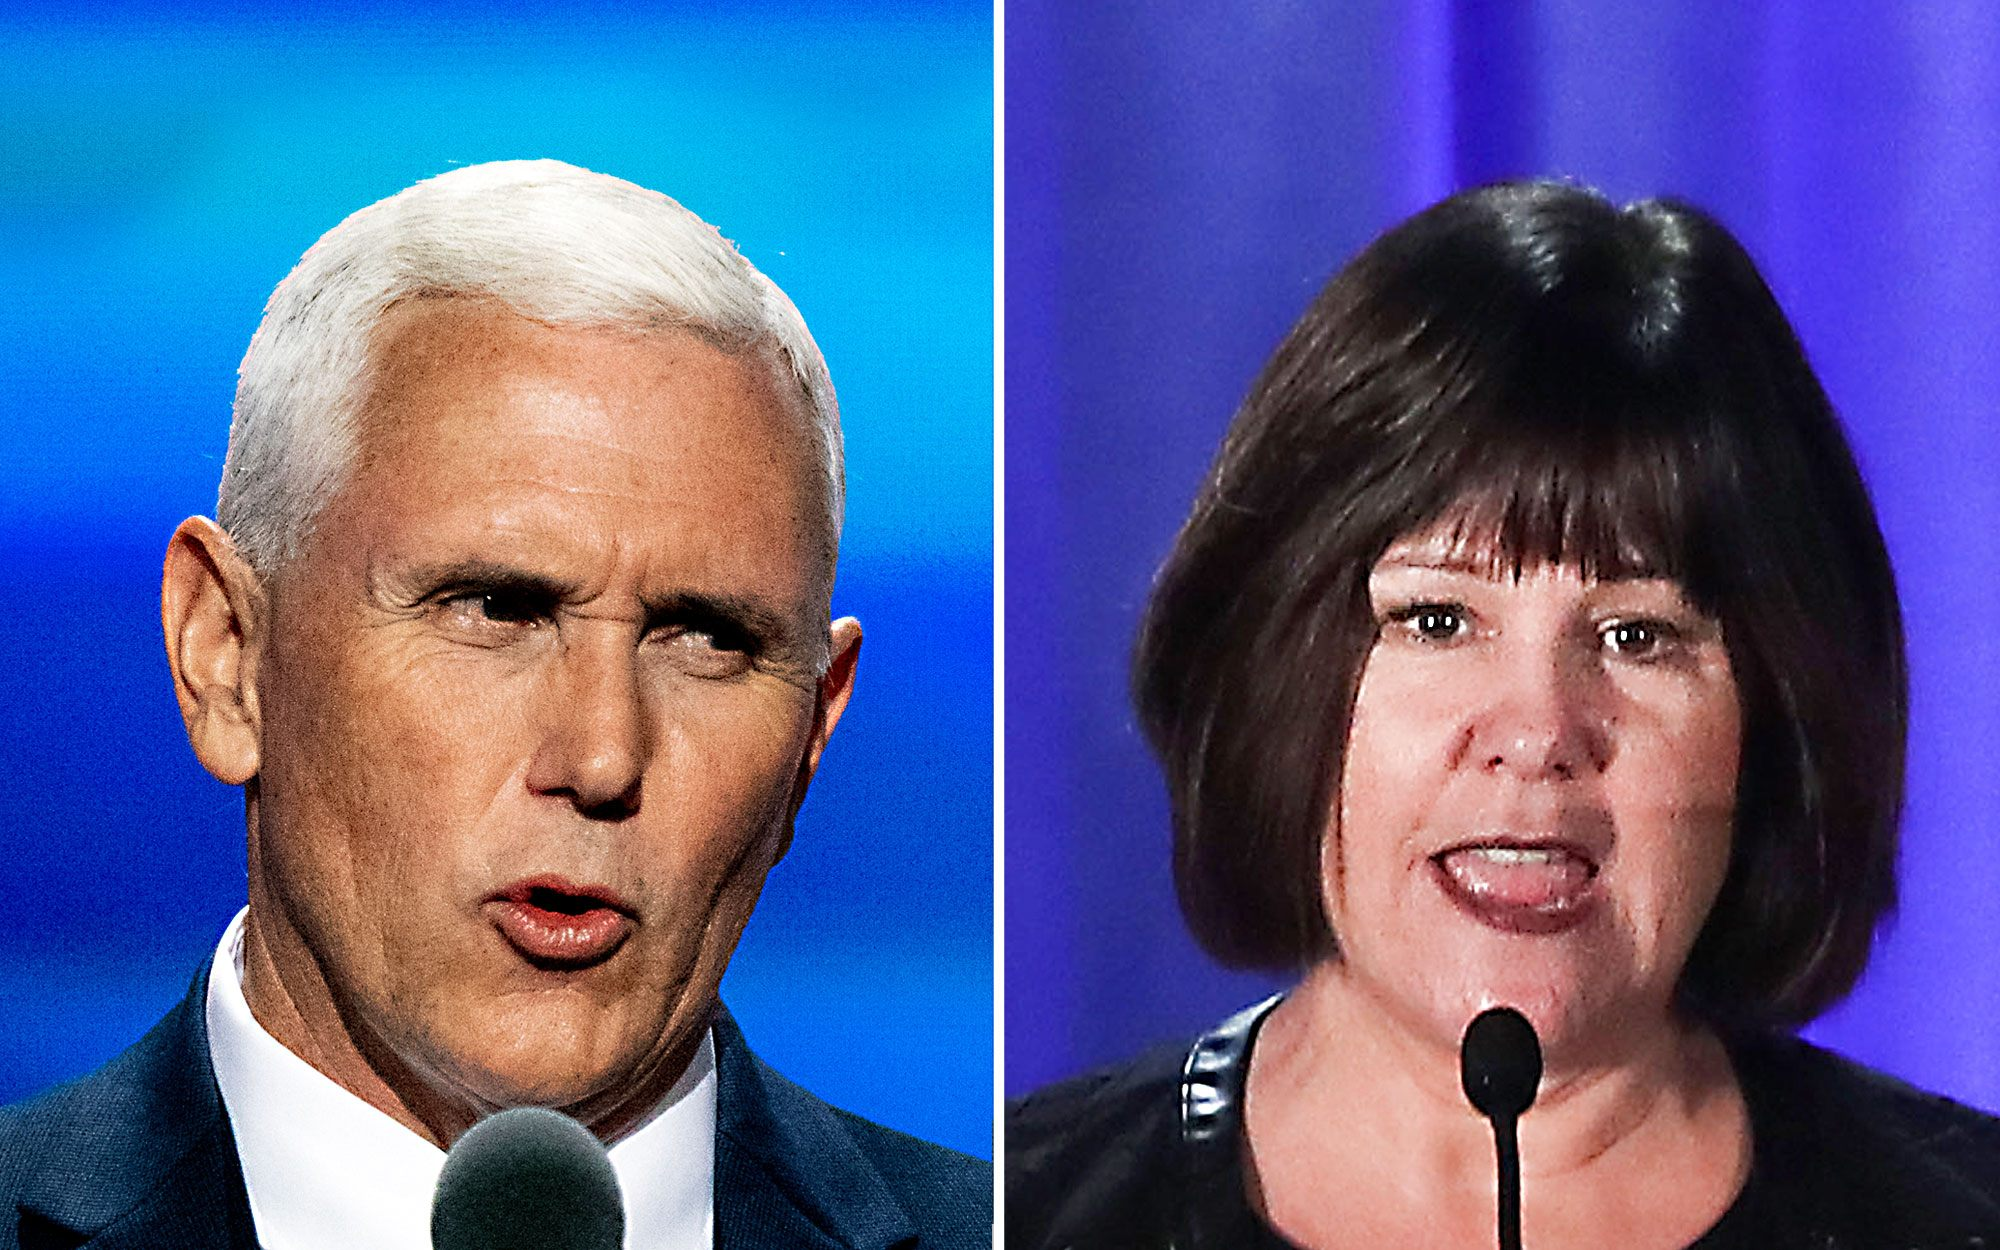 Pence Lashes Out: Media 'Attacks on Christian Education Must End'